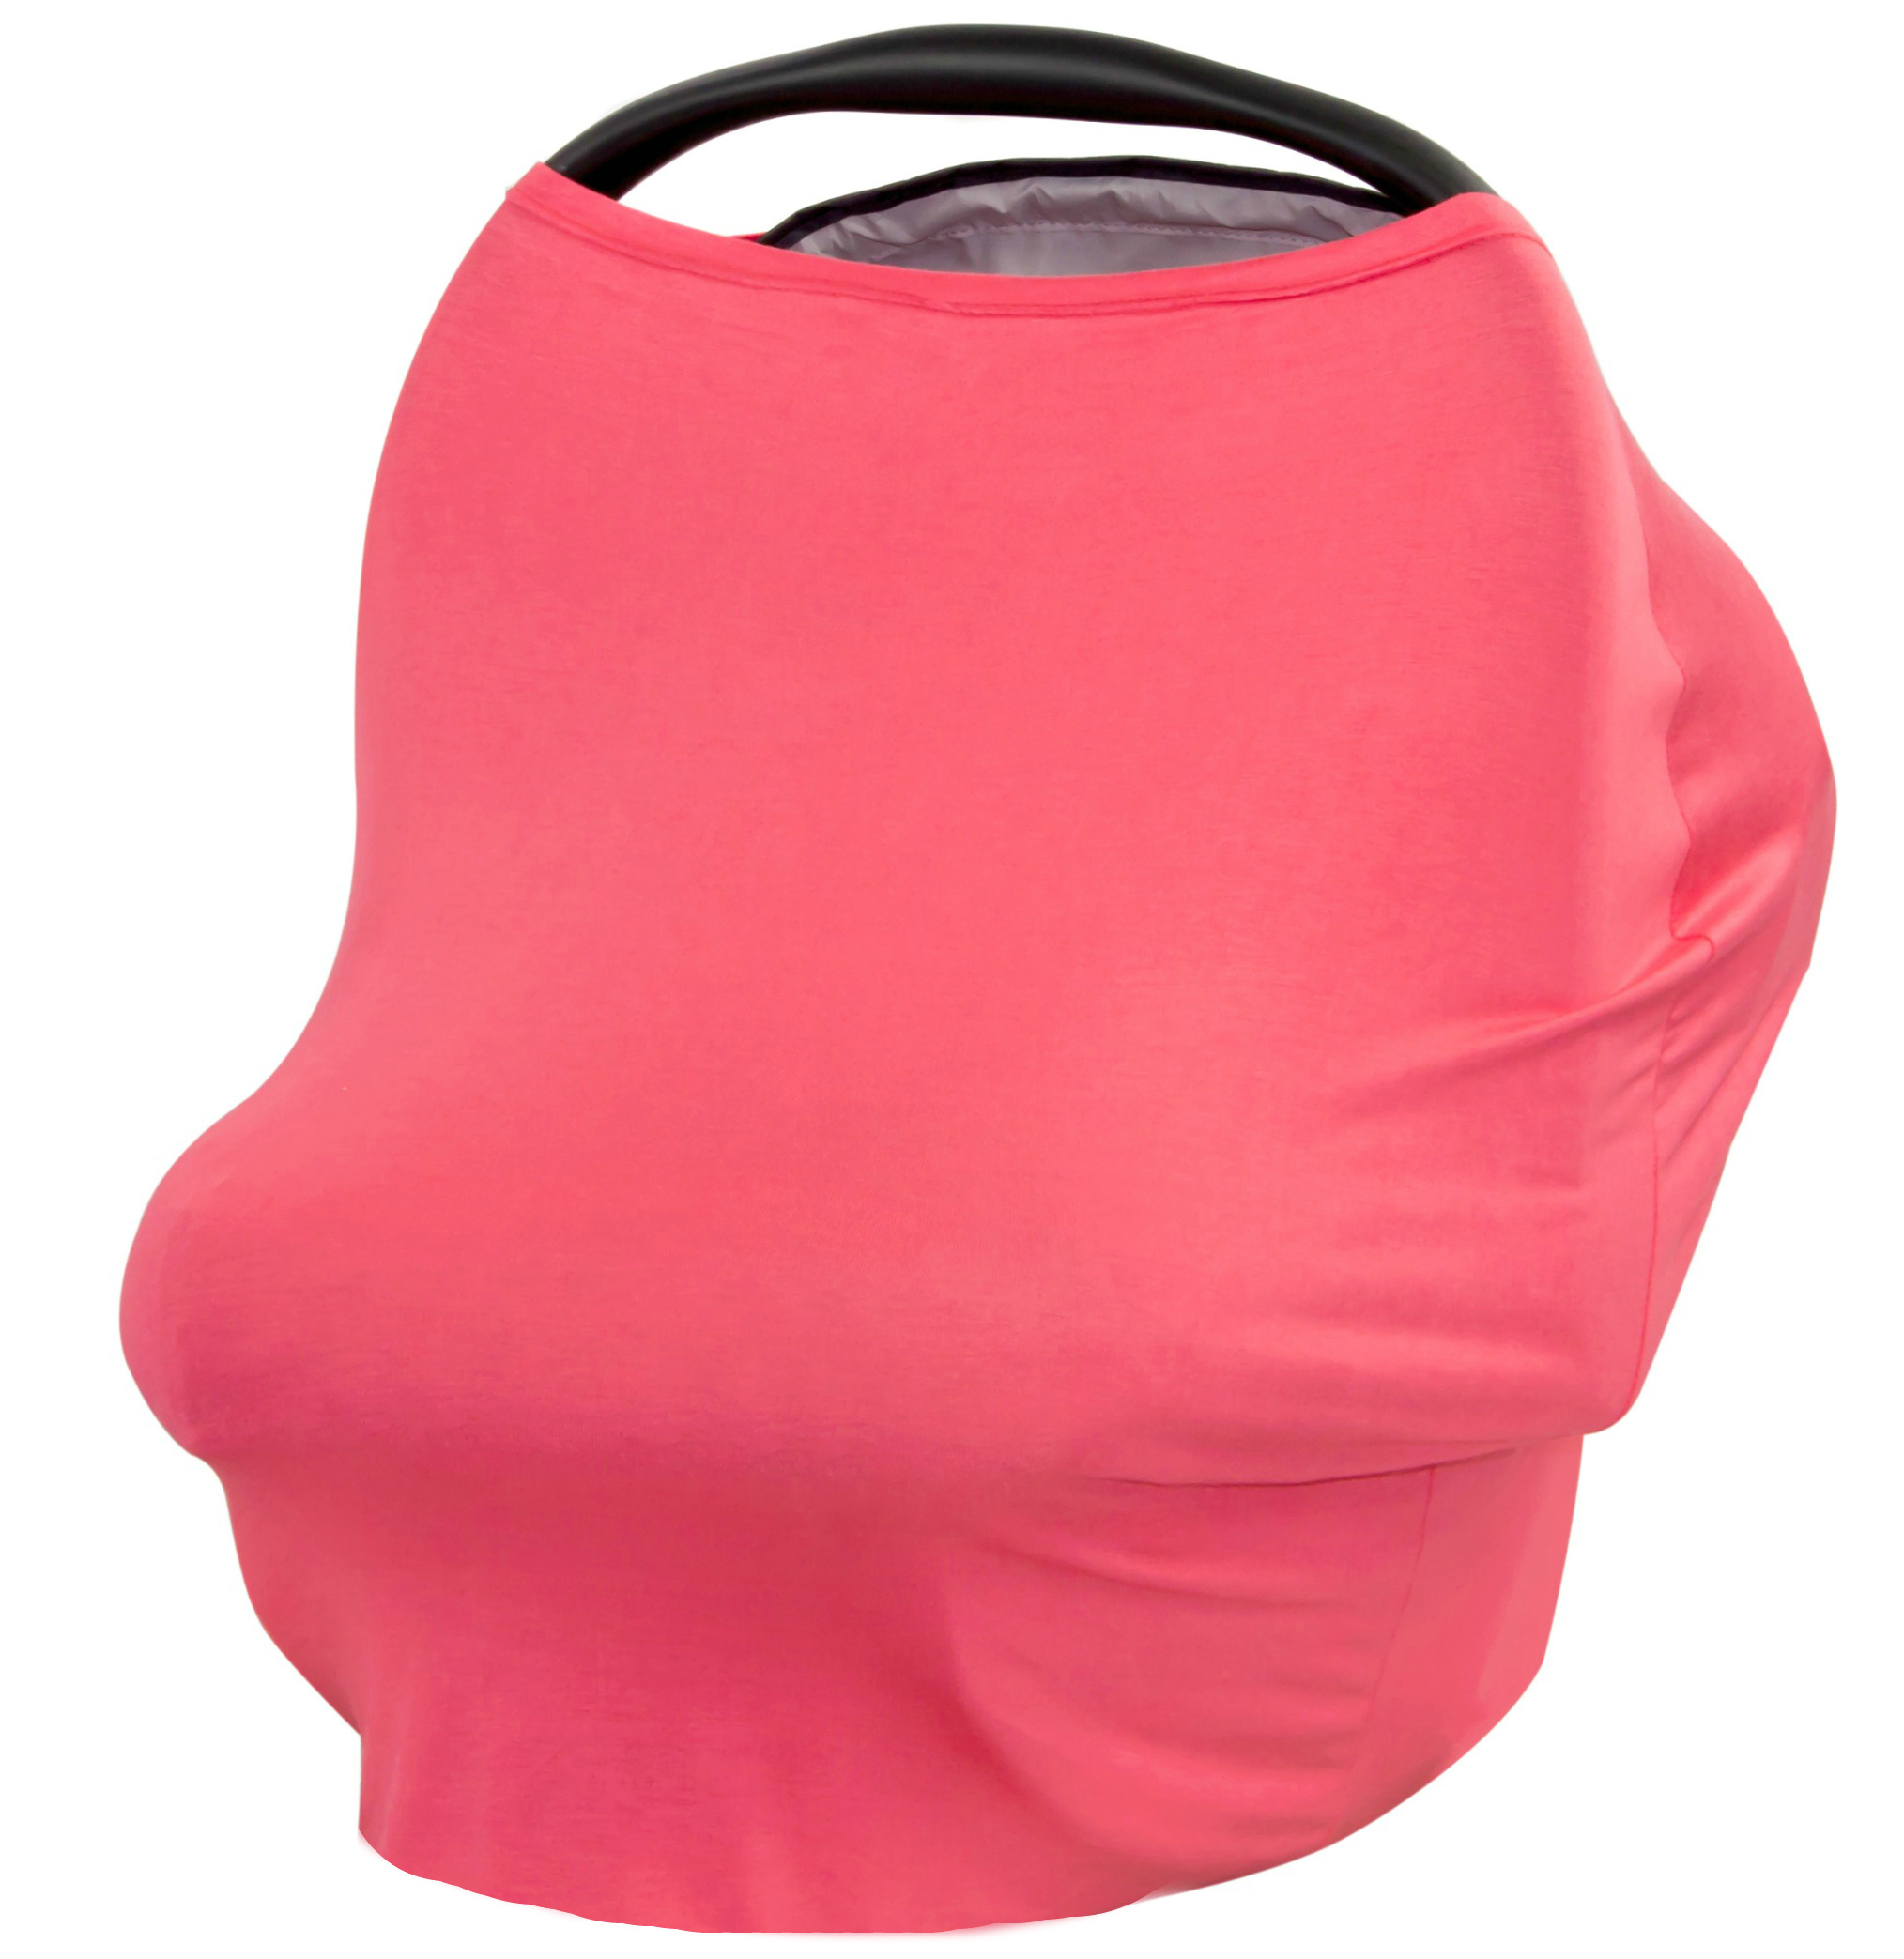 JLIKA Baby Car Seat Canopy Cover and Stretchy Nursing Cover - Coral